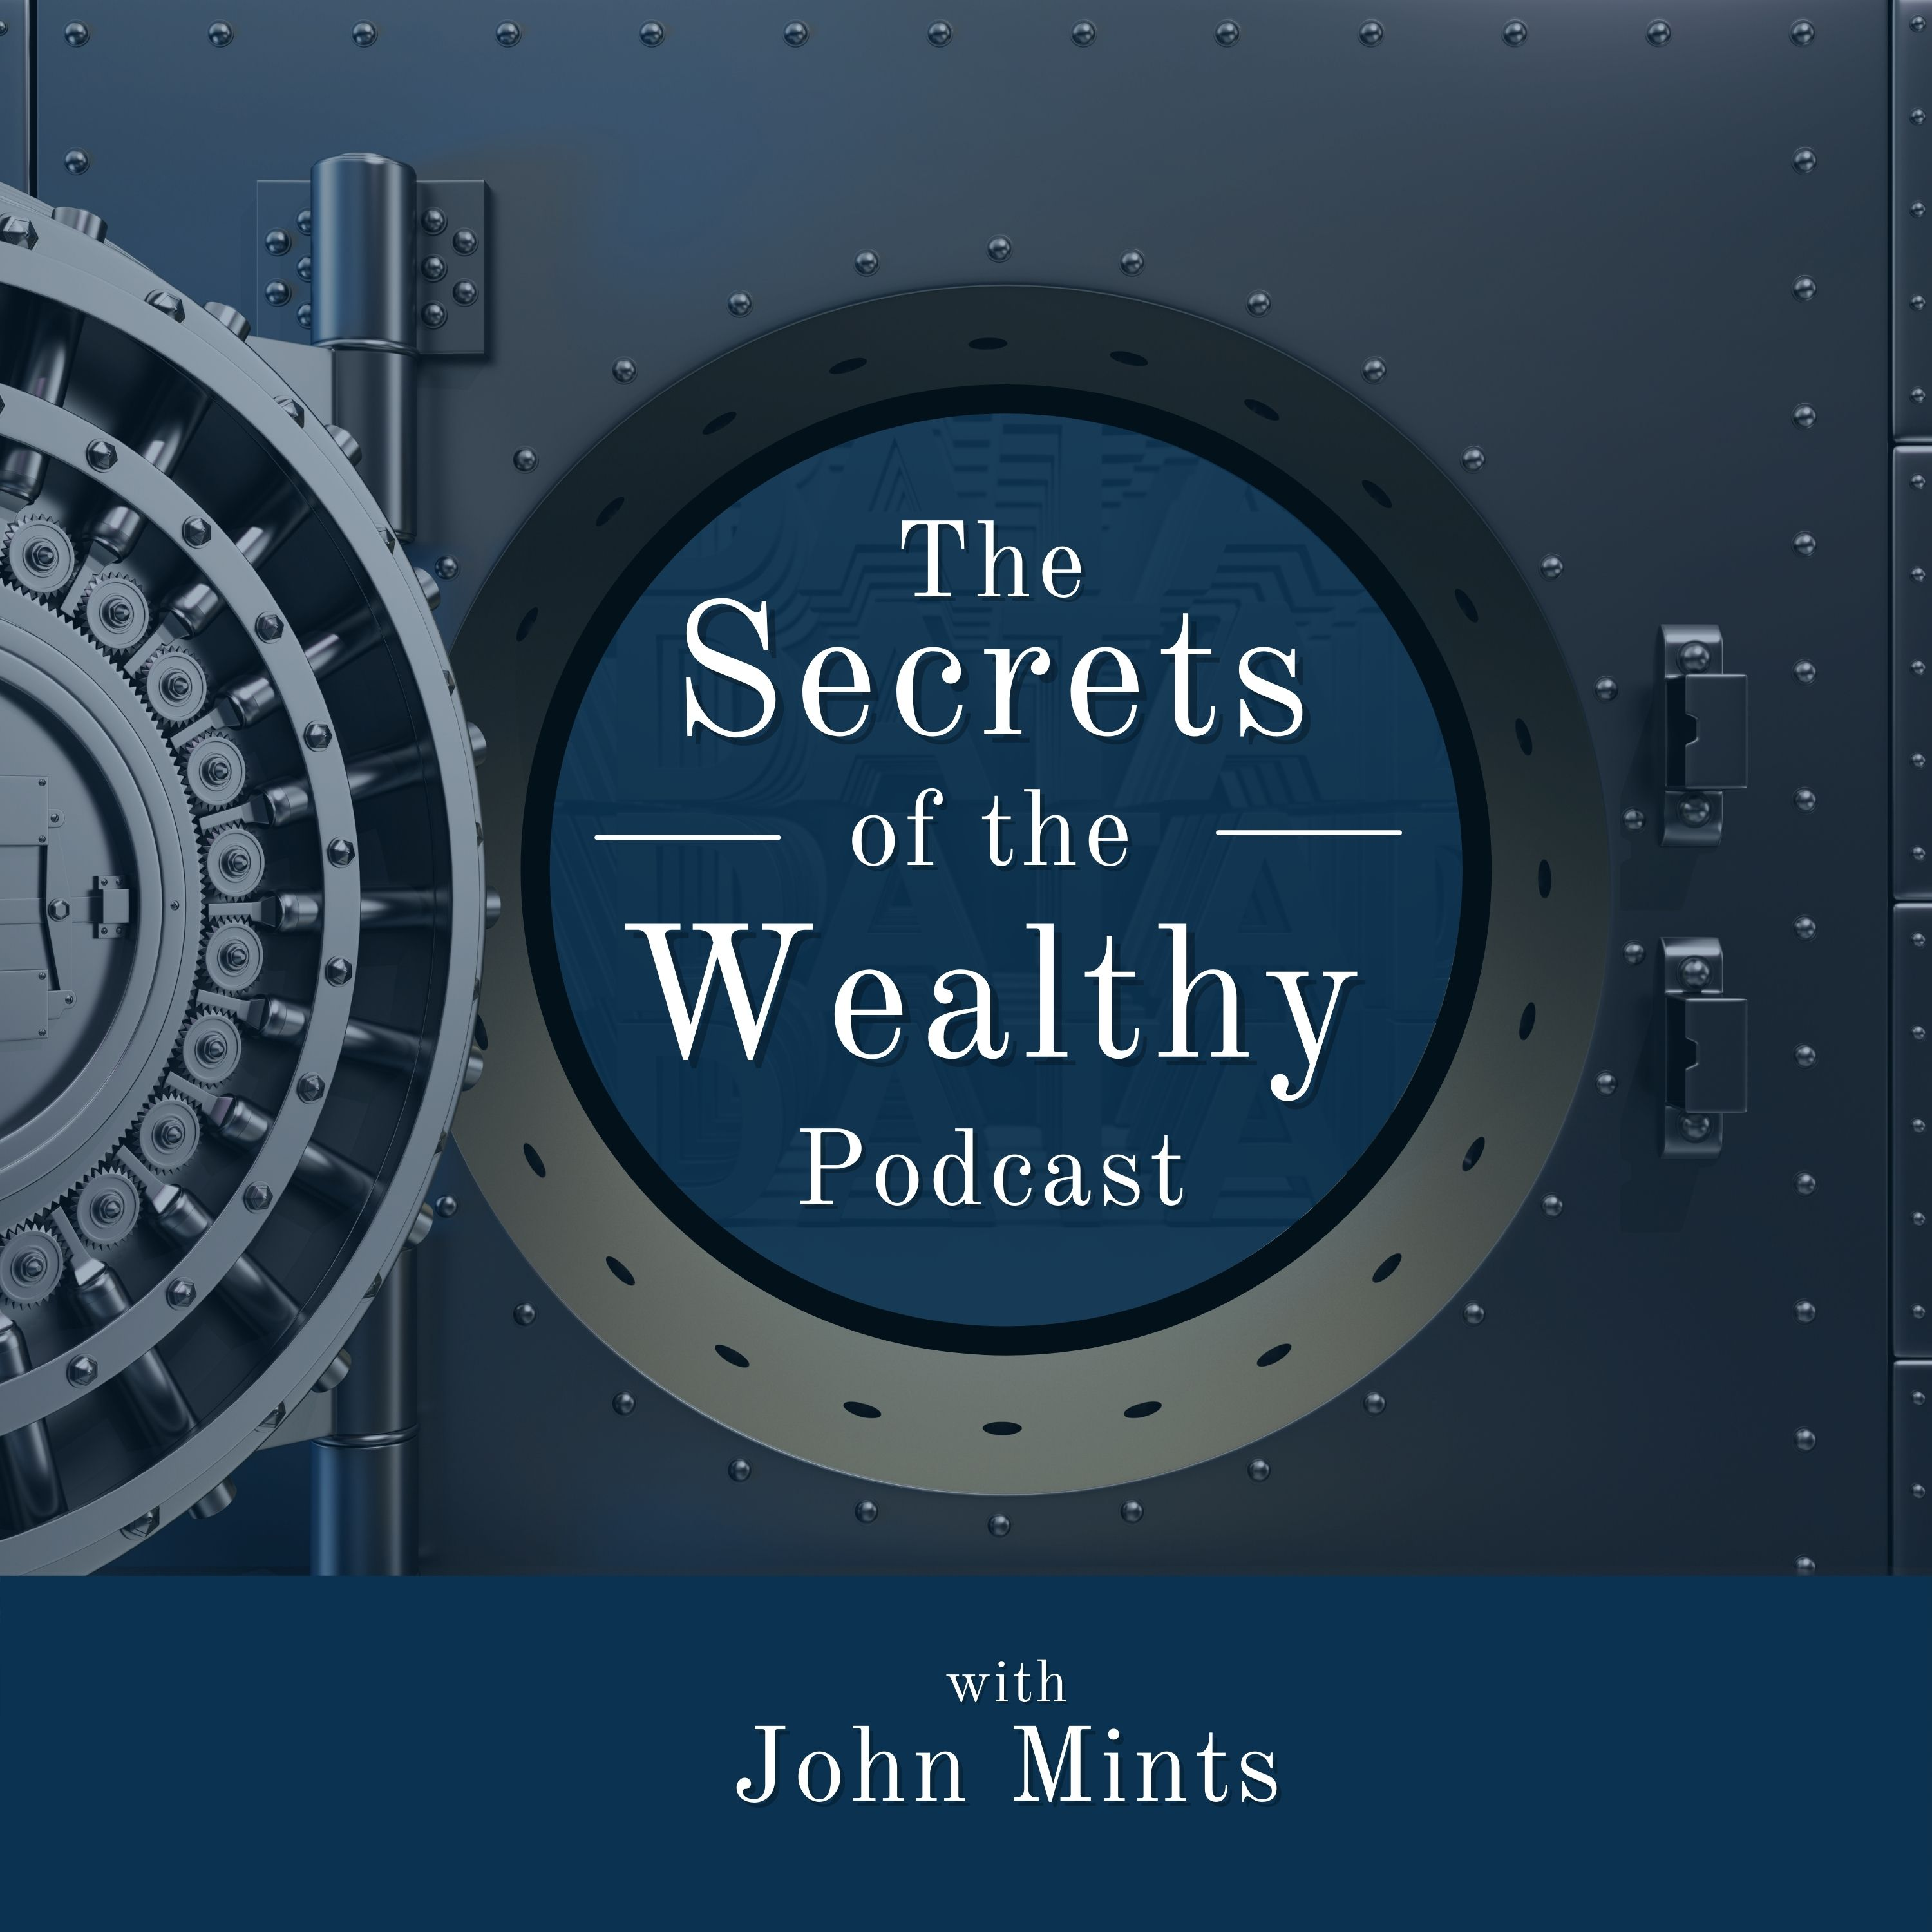 The Secrets of the Wealthy Podcast